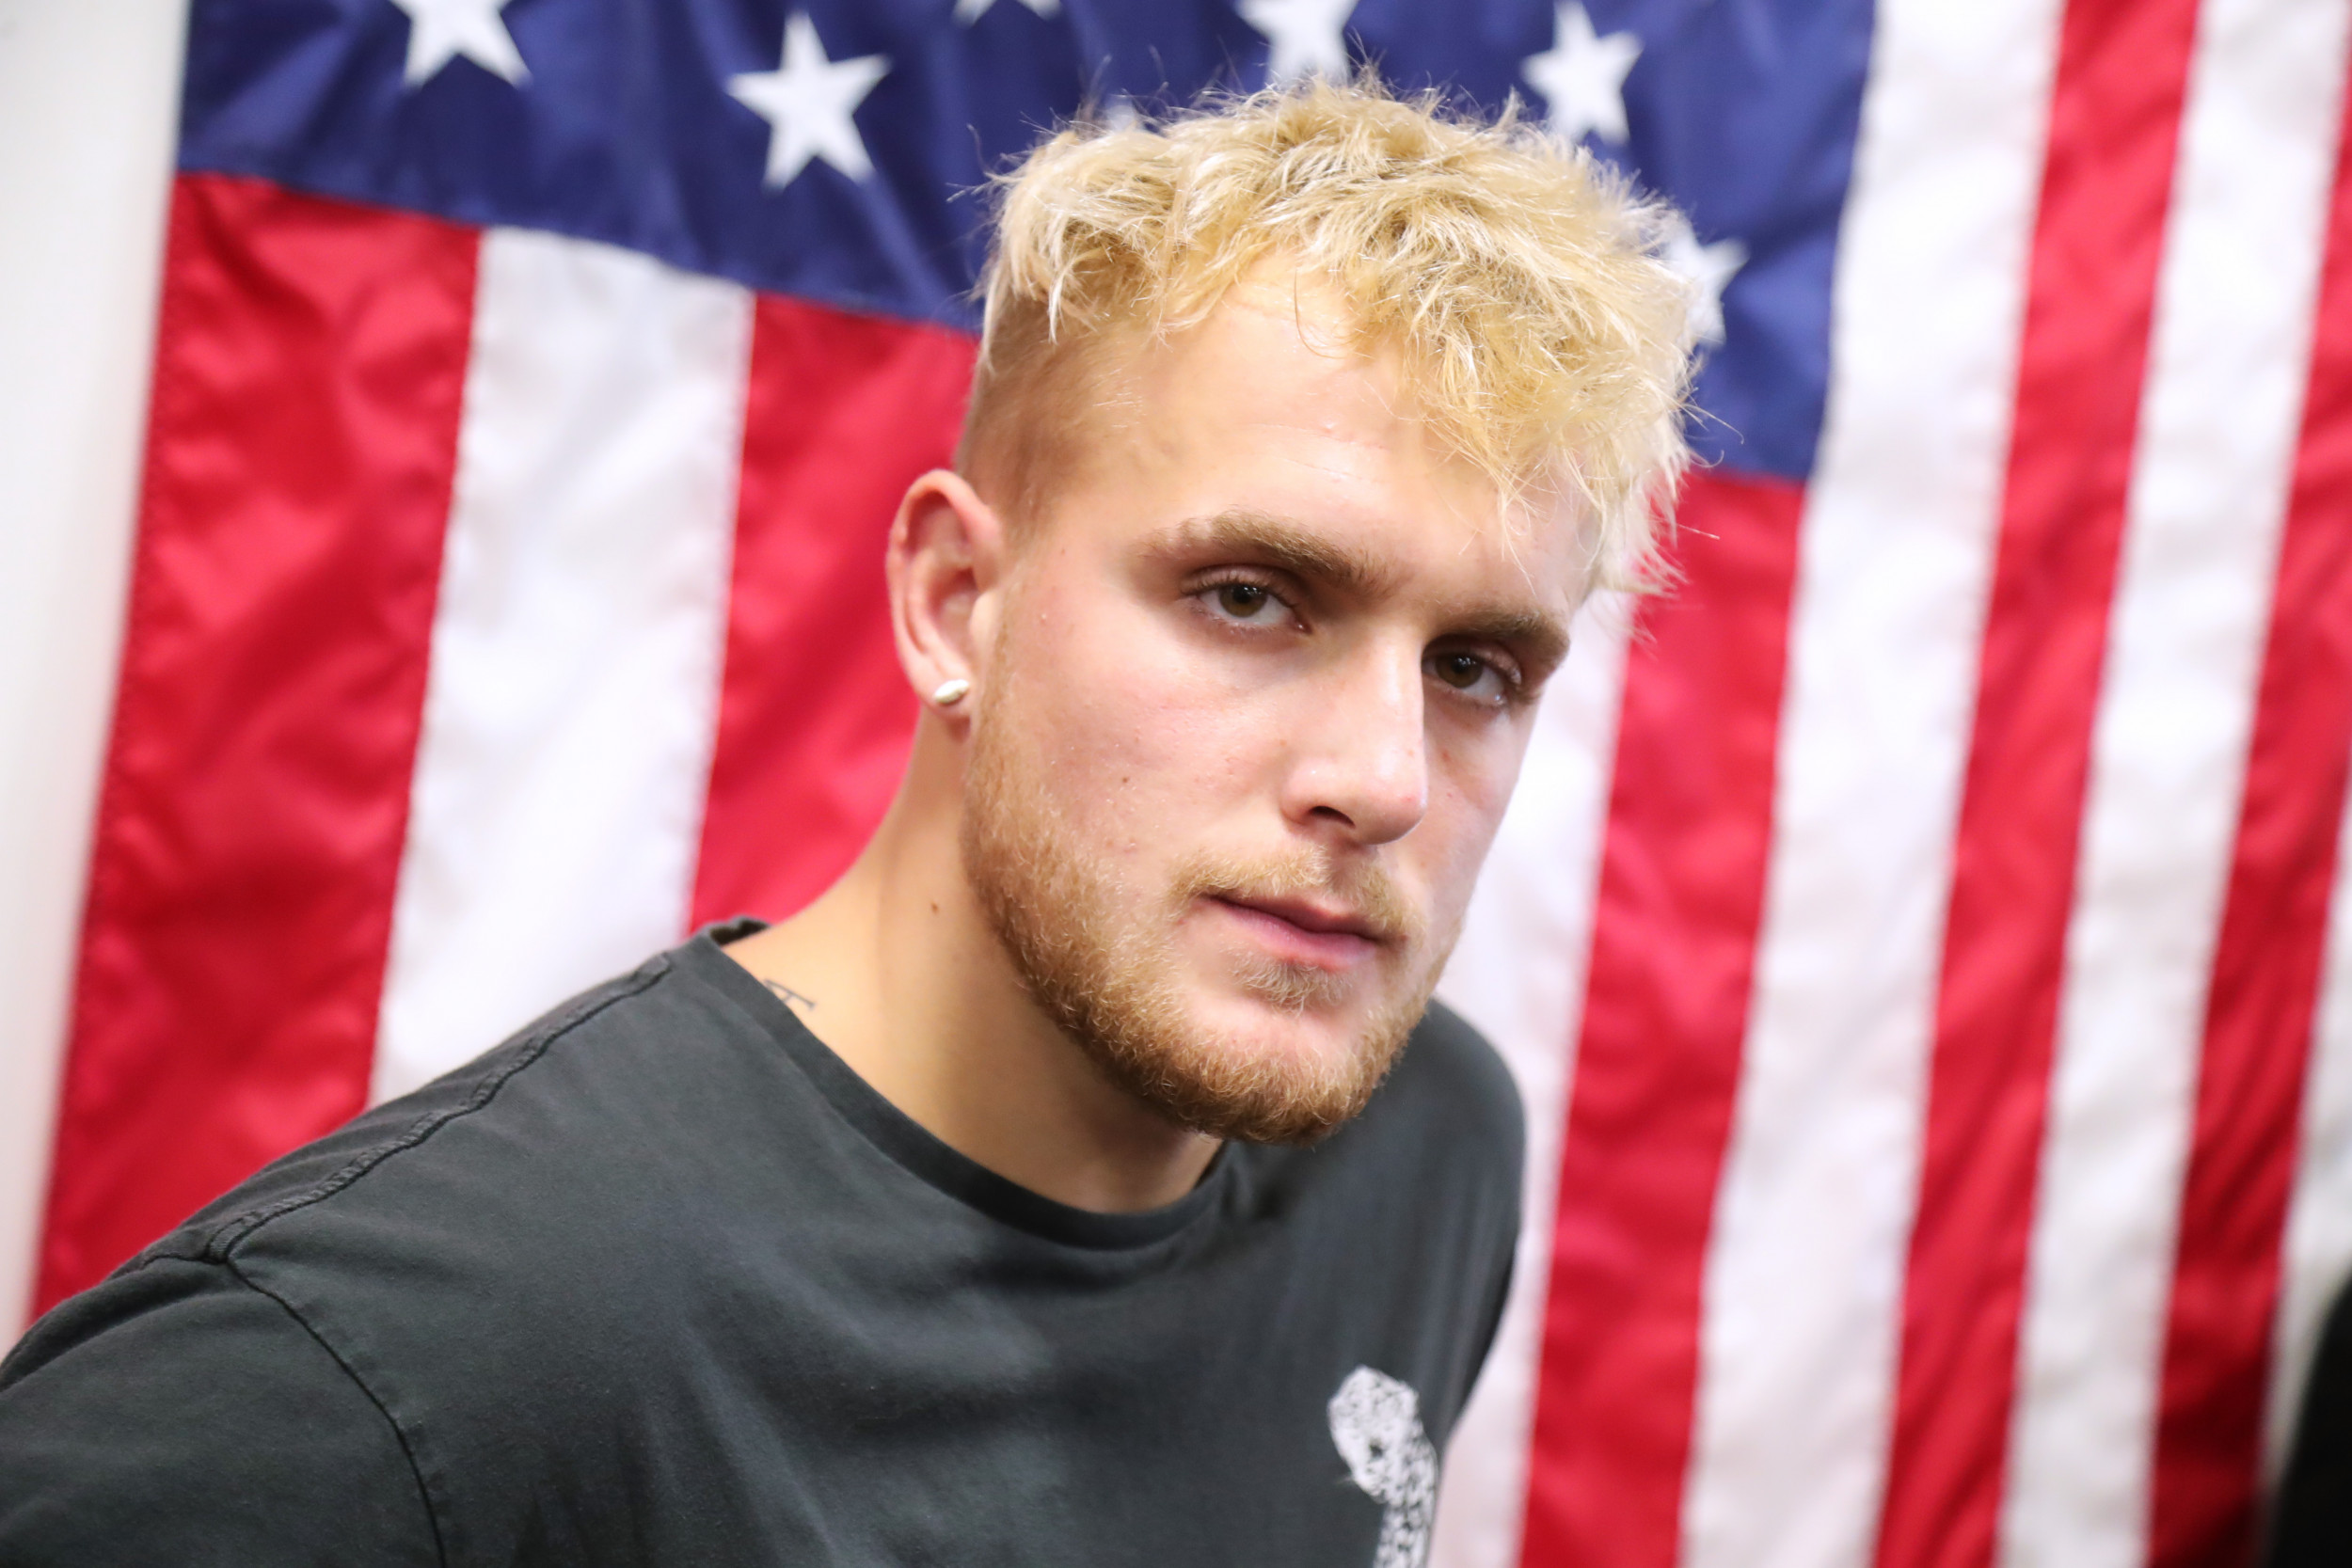 Jake Paul owess Uncle Sam more than $2 million in unpaid federal taxes